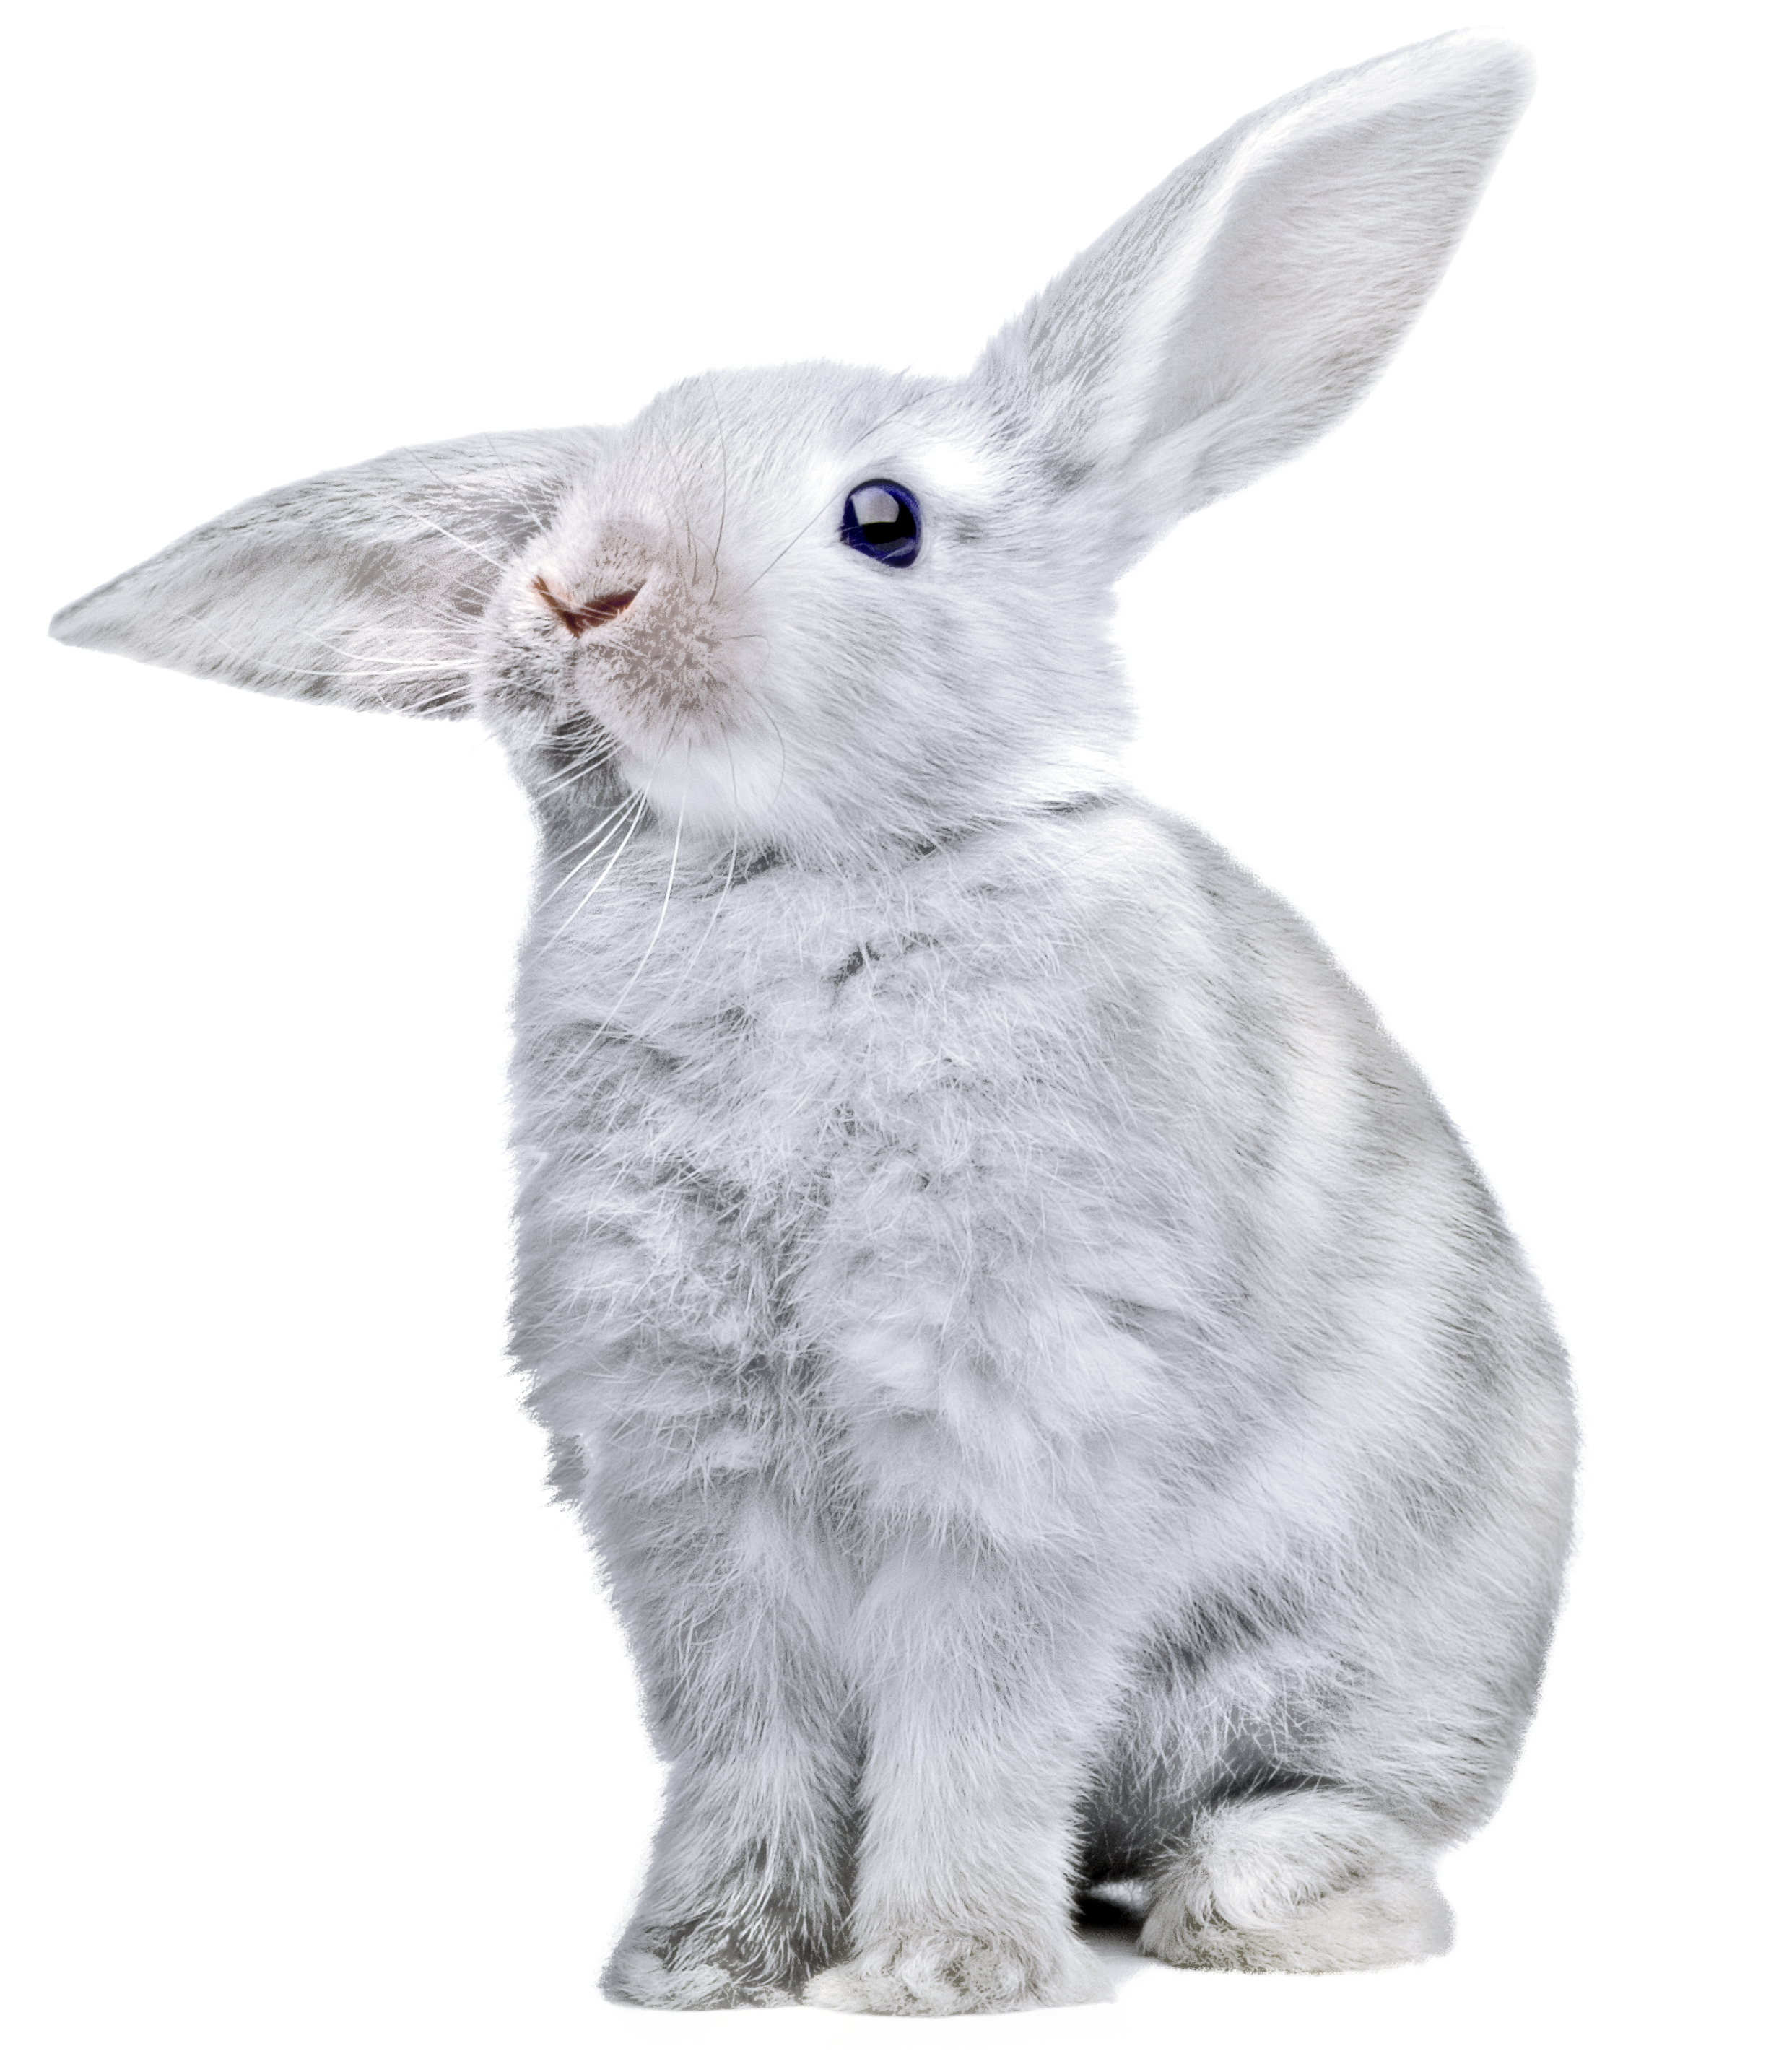 Bunny PNG - 27613